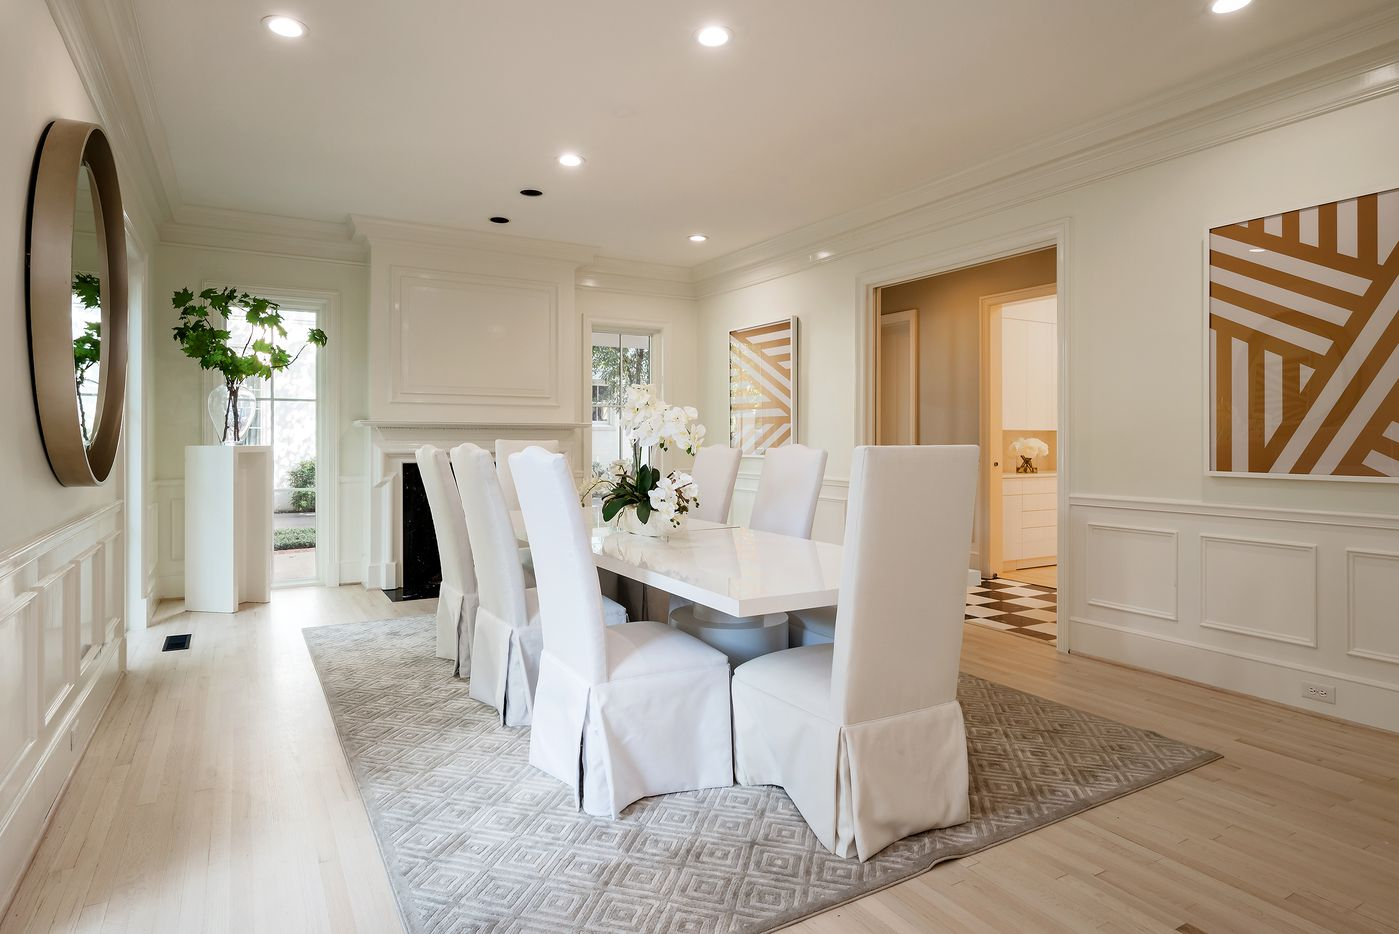 Take a look at the home at 3625 Beverly Drive in Highland Park.